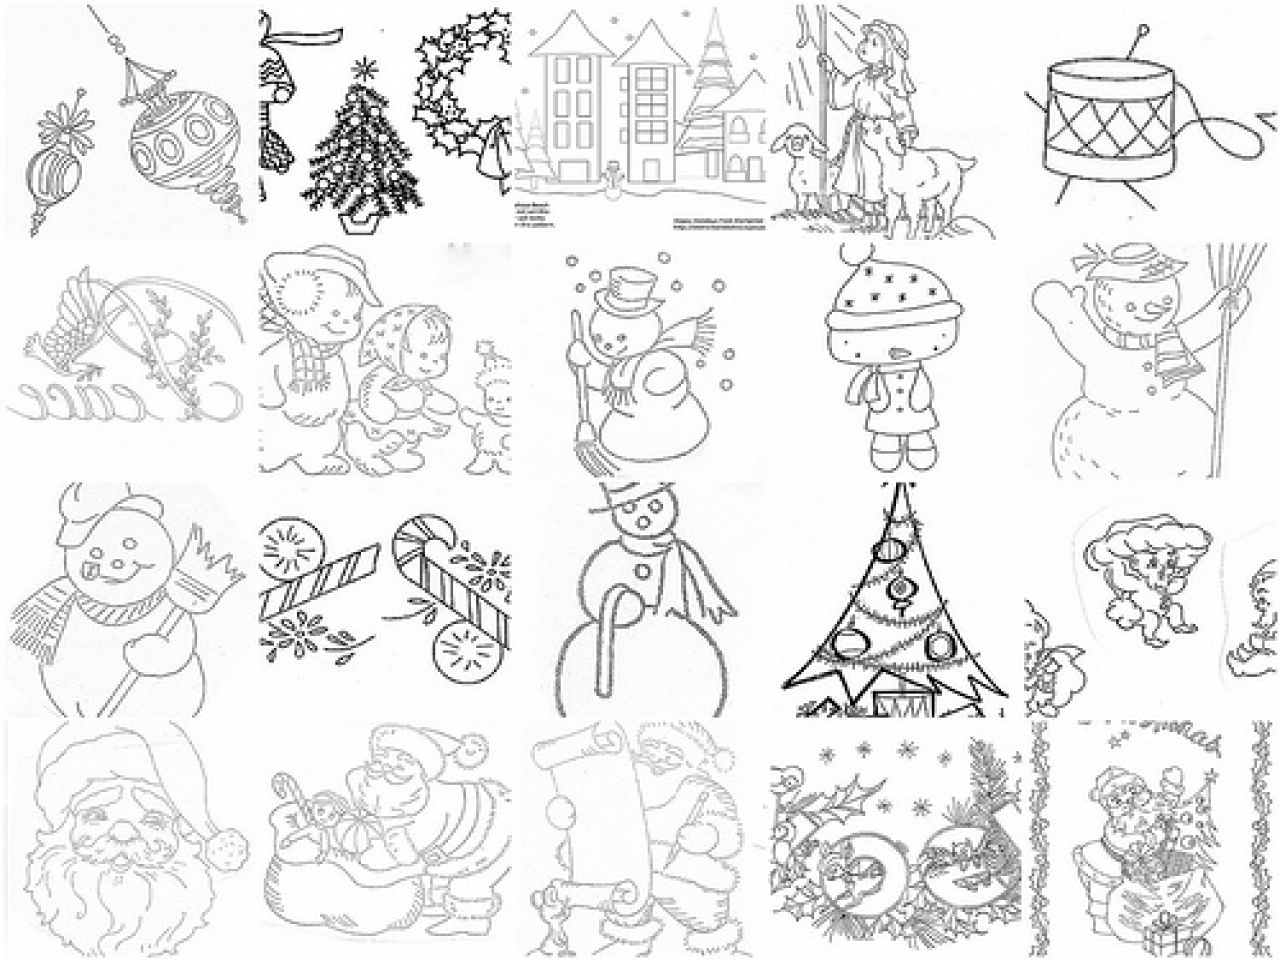 Christmas Hand Embroidery Patterns Elemental Designs Simple Hand Embroidery Patterns Christmas Hand